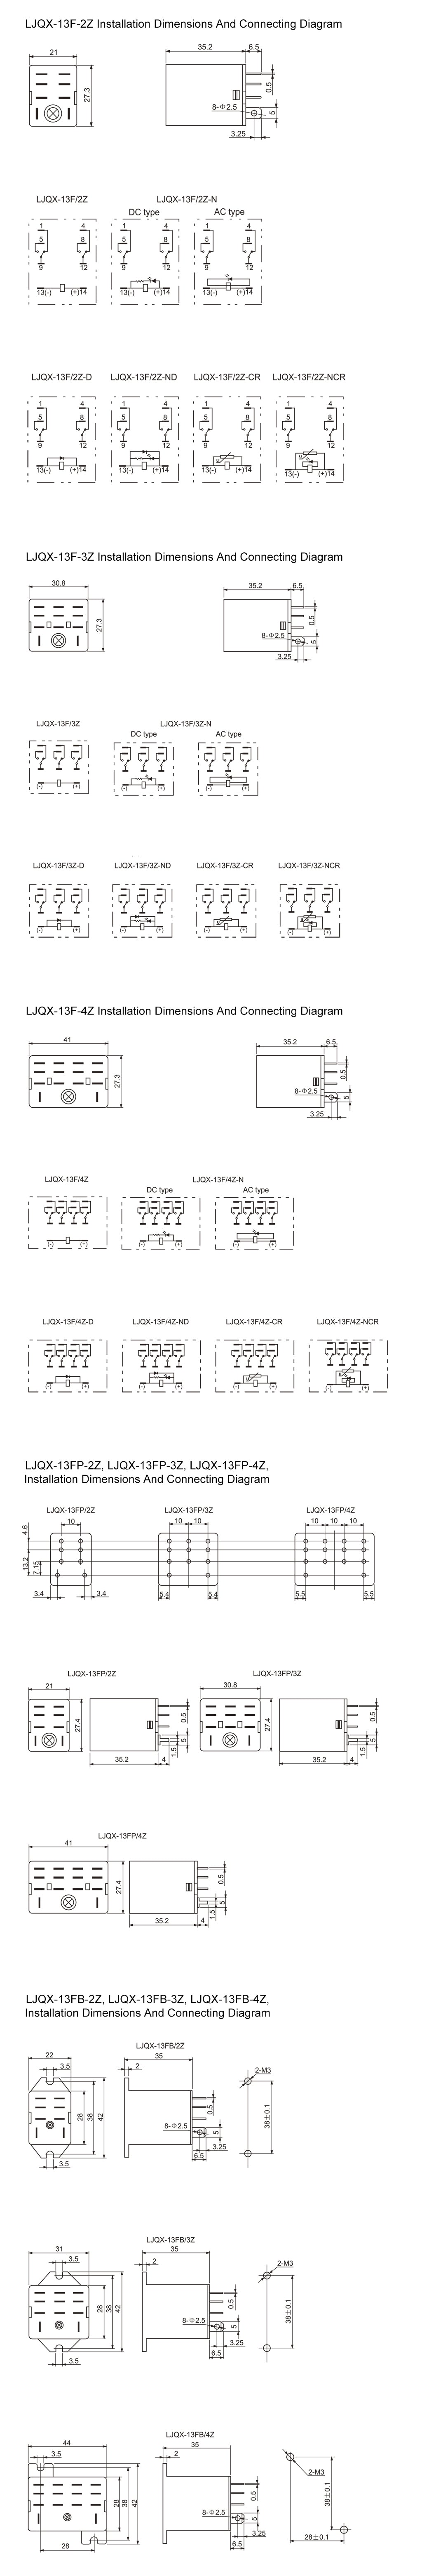 LJQX-13F Series Installation Dimension and Connecting Diagram